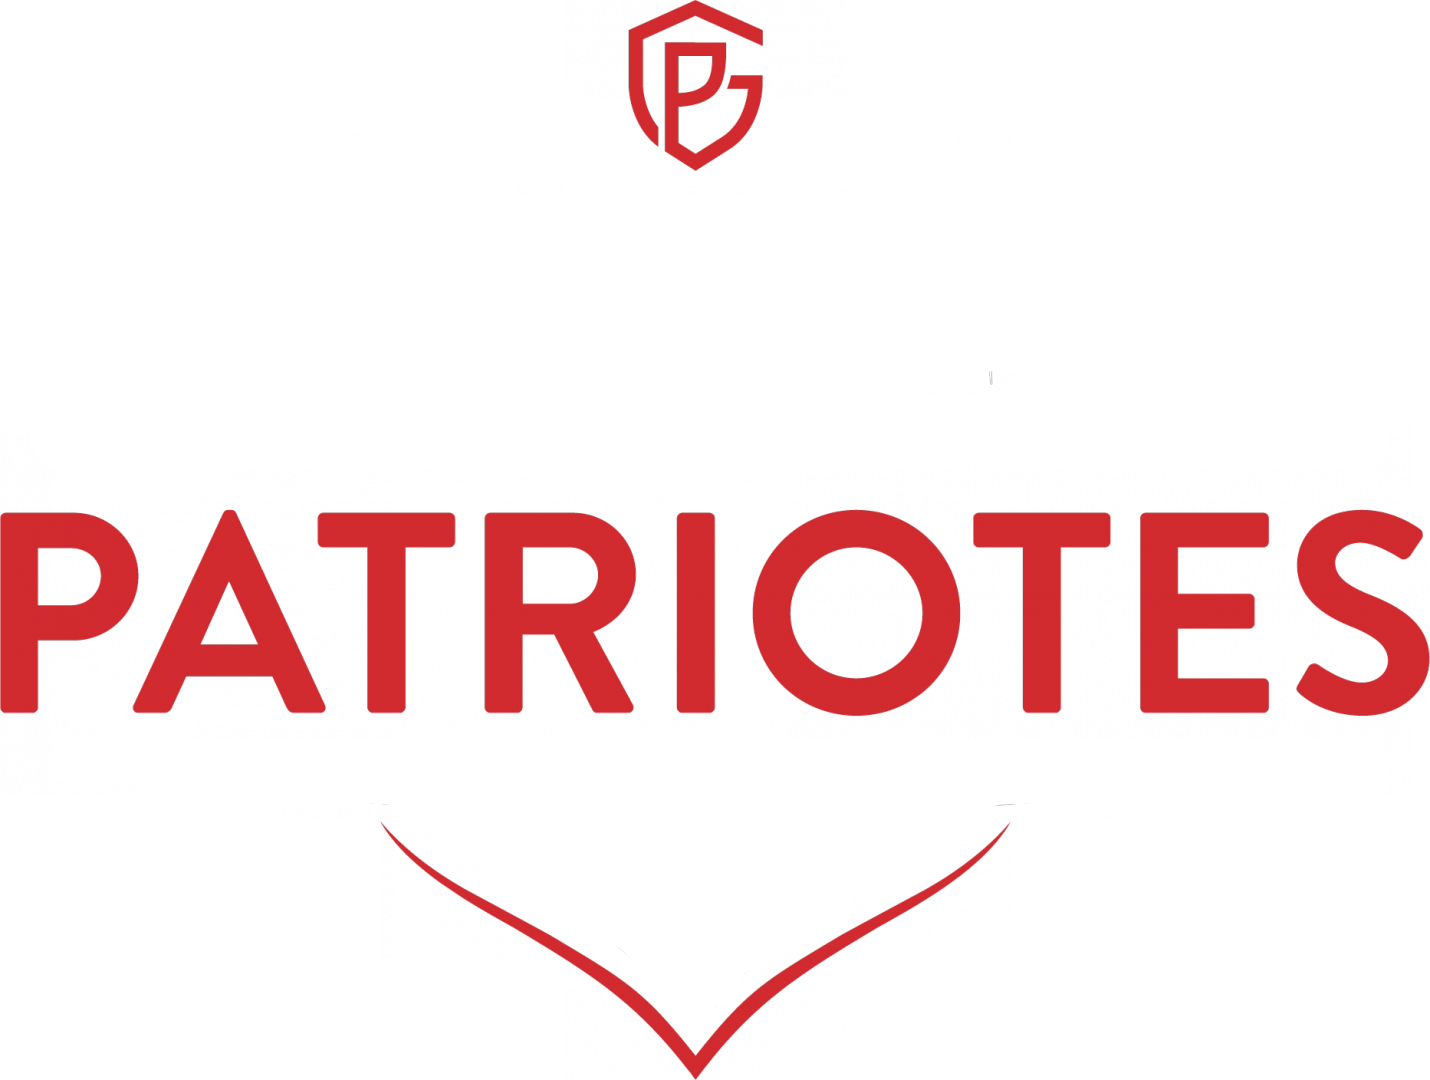 Club De Golf Les Patriotes inc